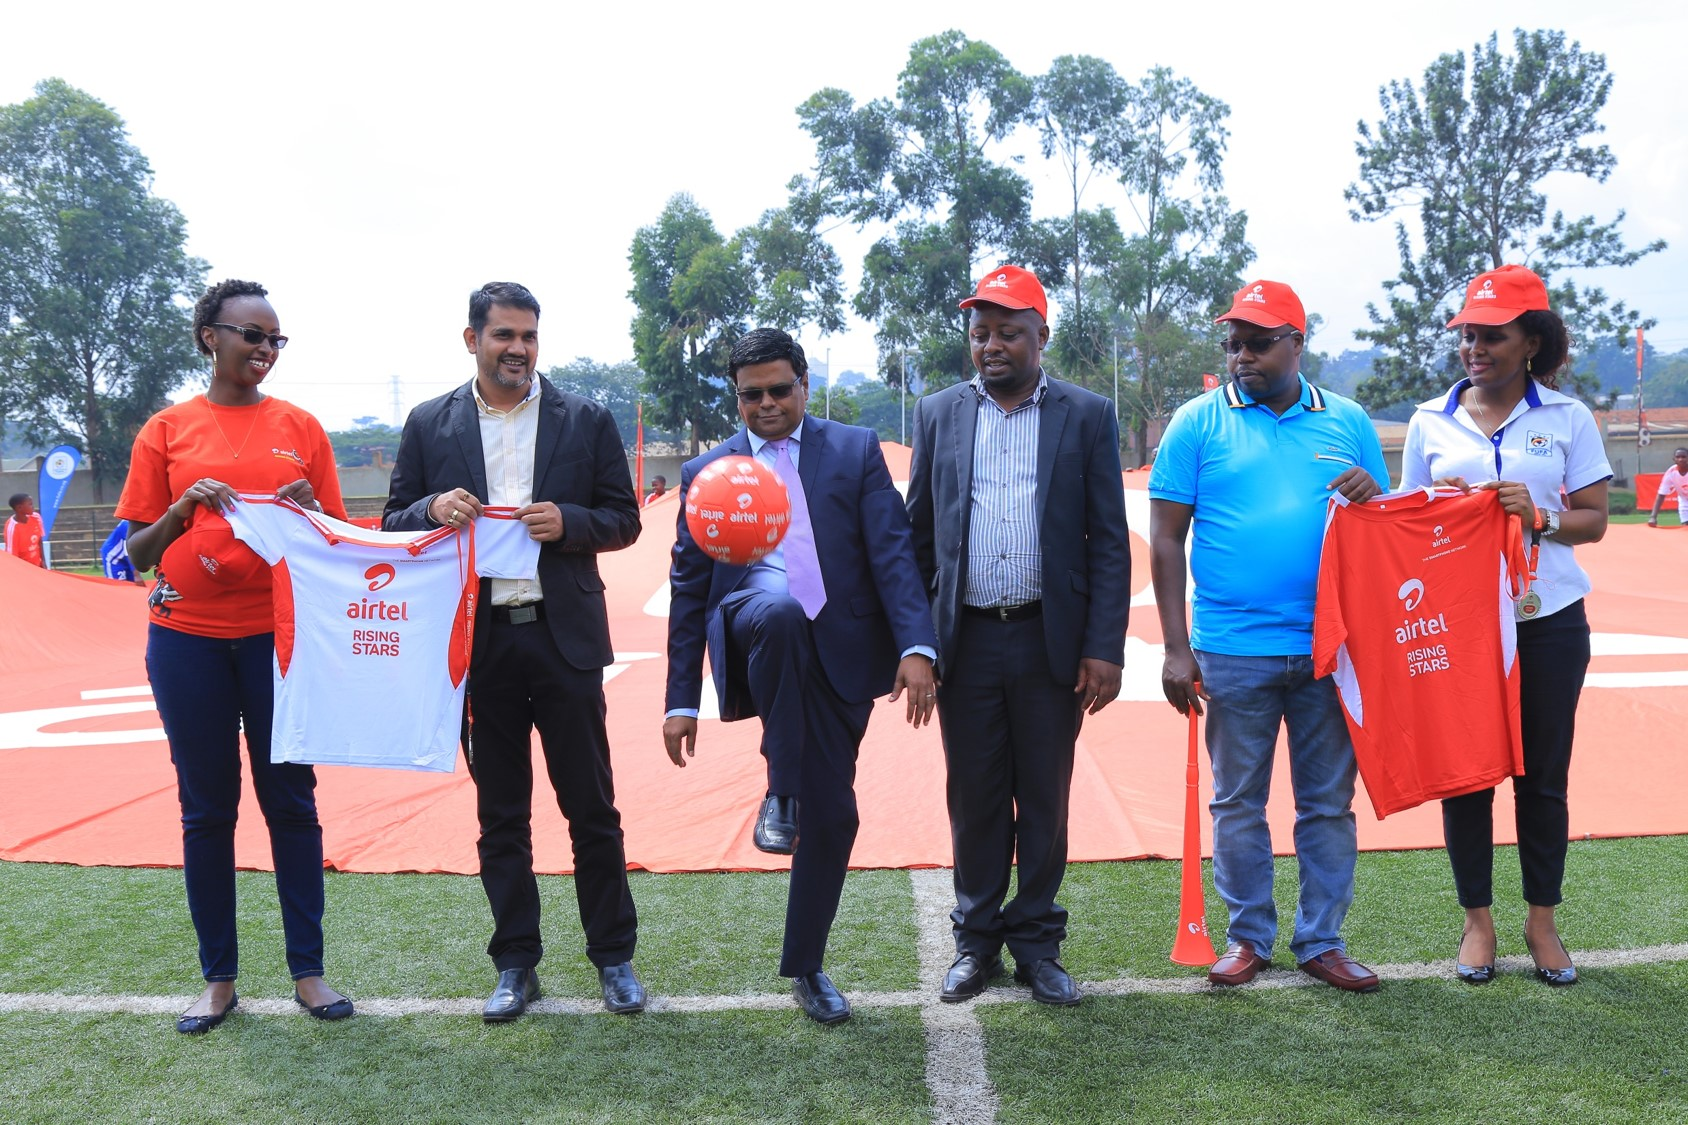 Airtel Uganda staff led by MD V.G. Somasekhar alongside FUFA officials officially launch ARS Season 7..